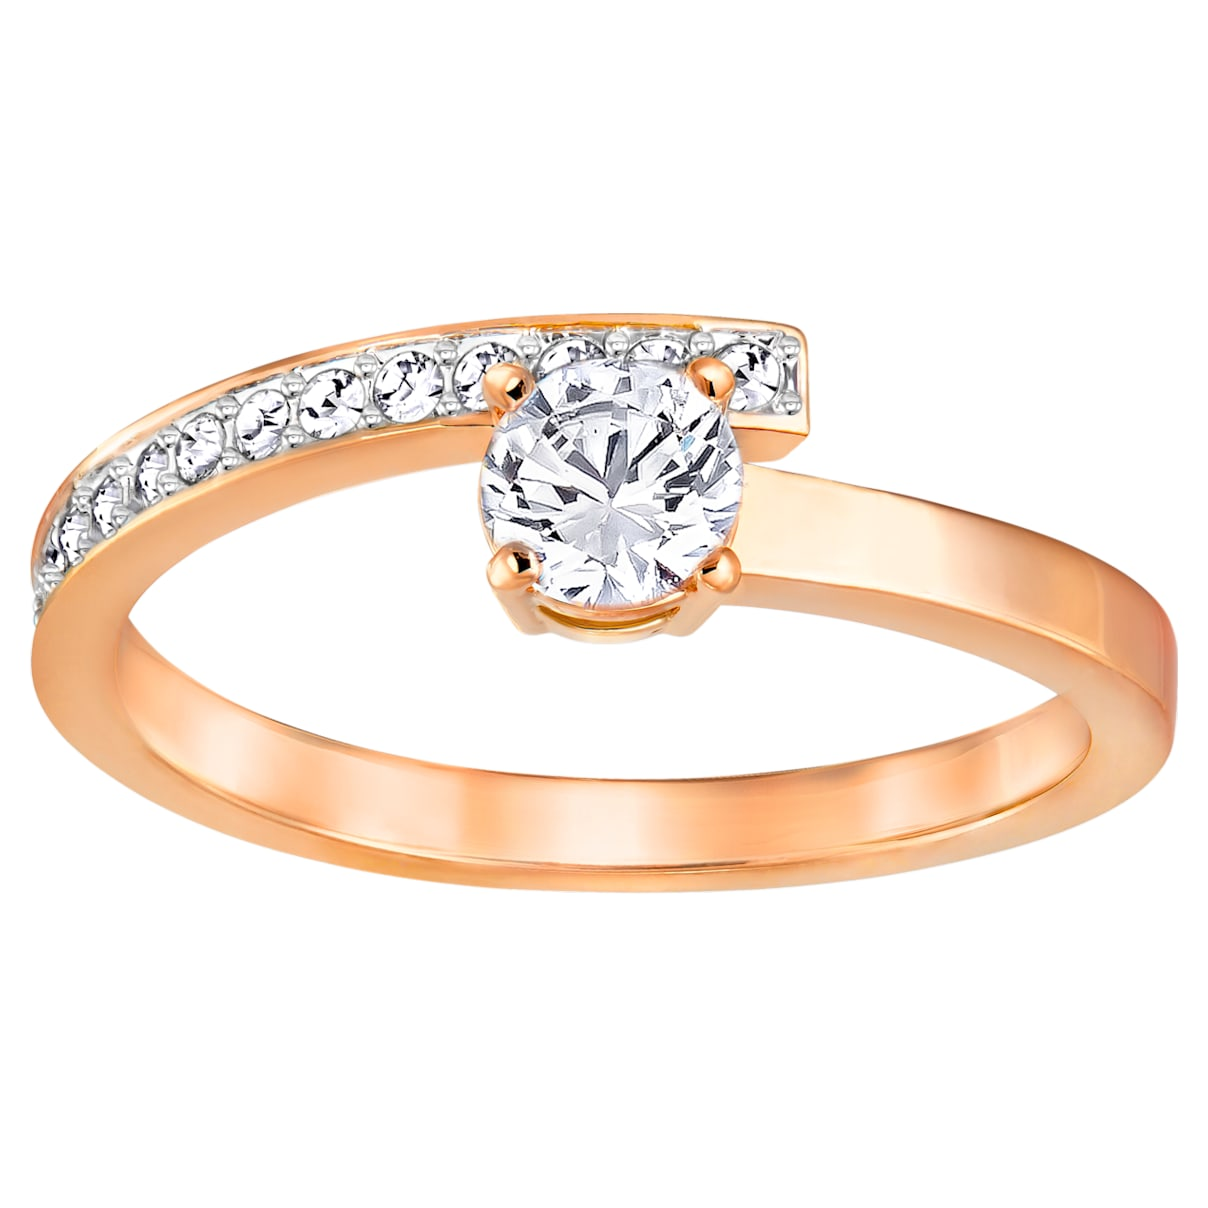 Fresh Ring, Small, White, Rose-gold tone plated